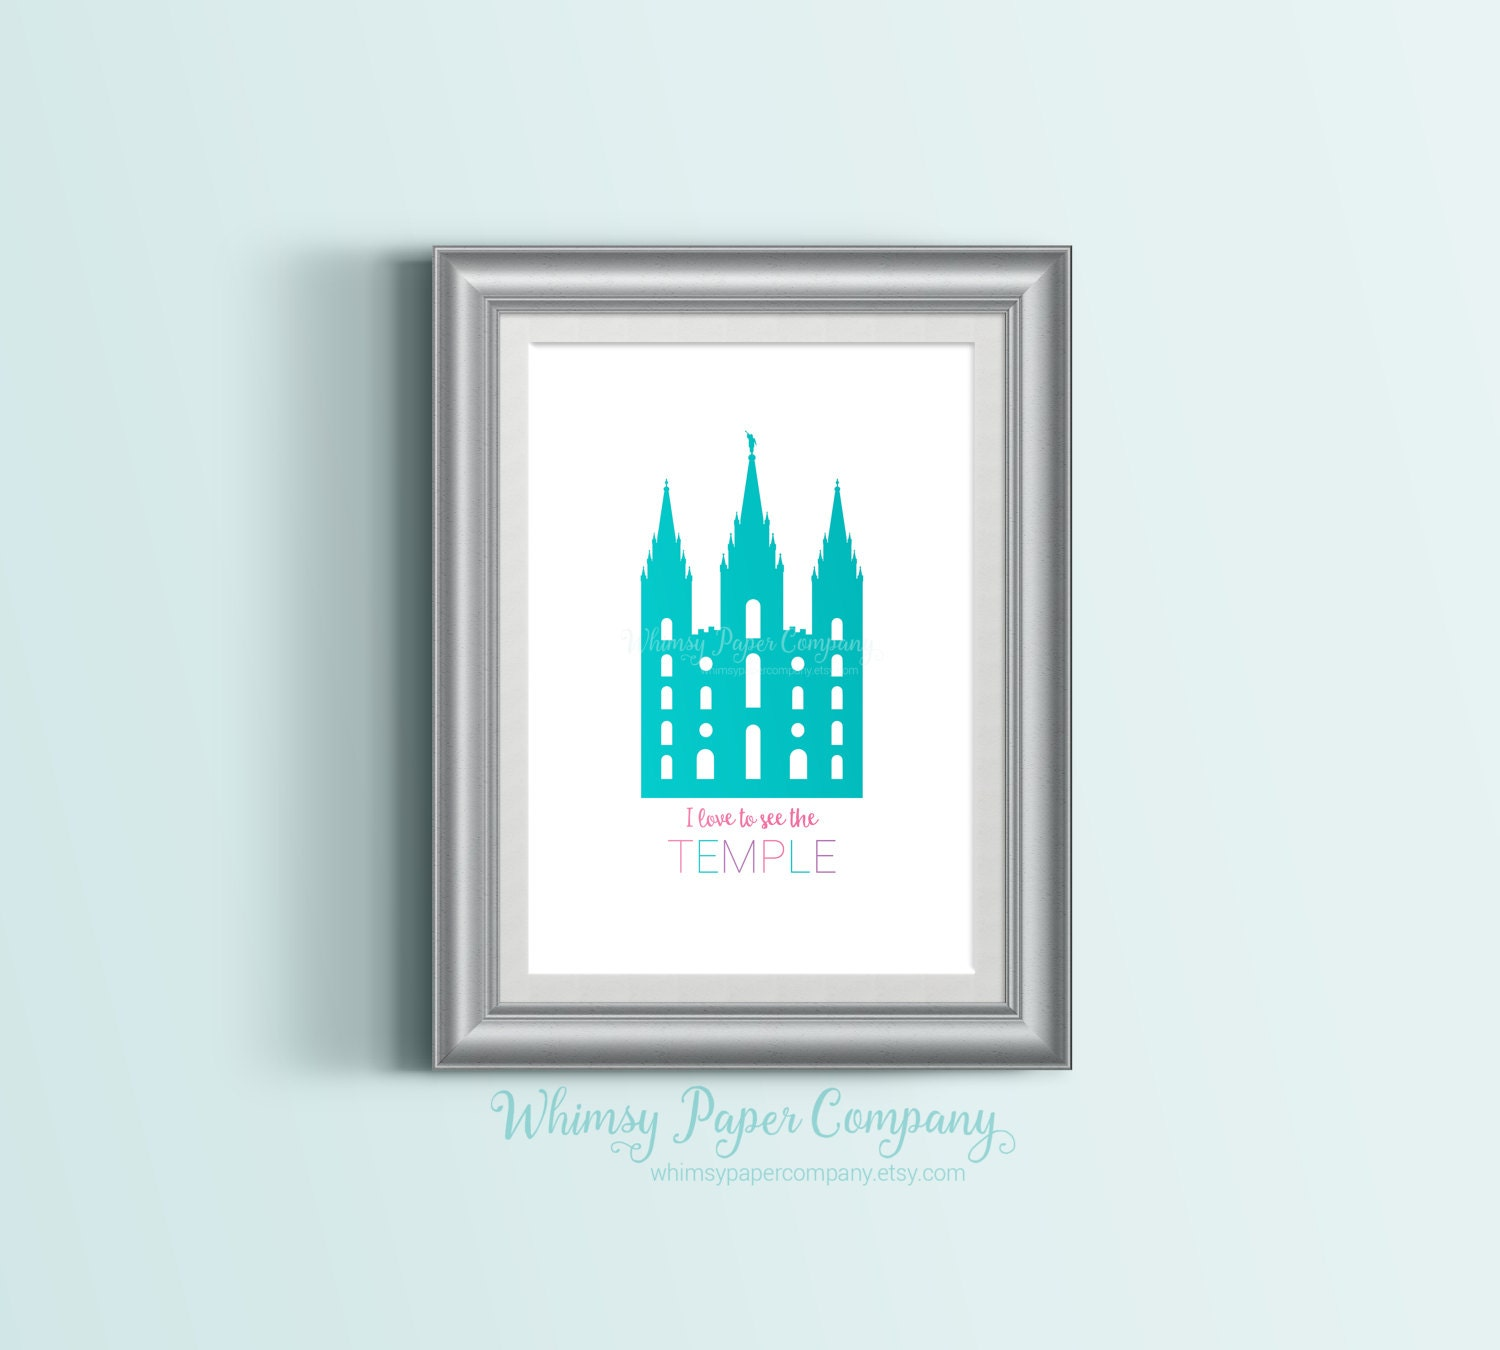 Nurseries in salt lake city - Salt Lake City Temple Home Decor Art Print Purple Pink Aqua Digital Printable Artwork Wall Decor Nursery Baby Kids Poster Sign Lds Primary